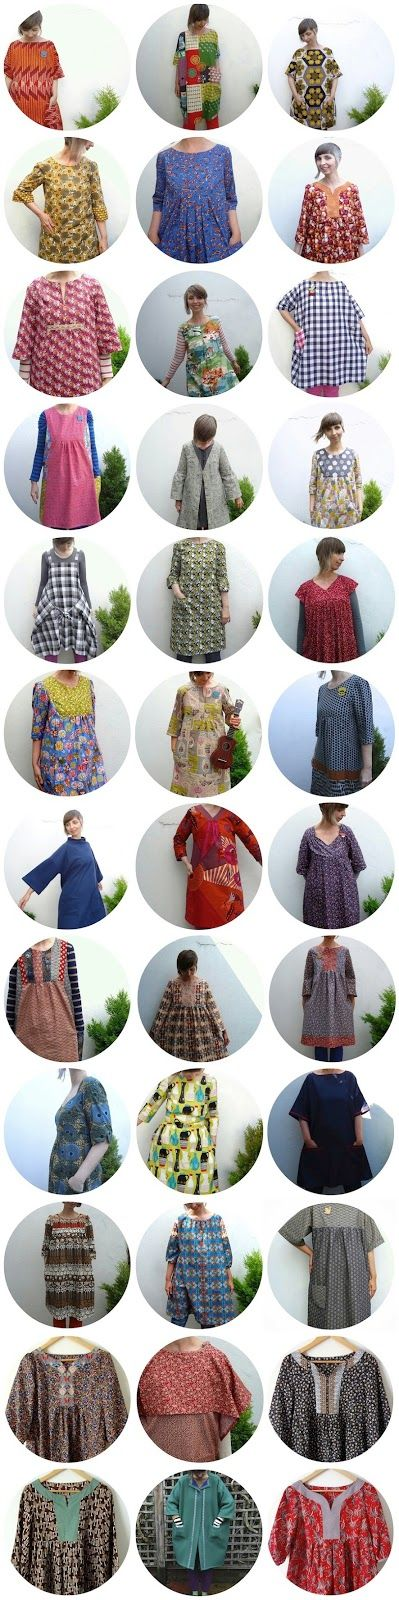 Ivy Arch: The year I stopped buying clothes and sewed myself...